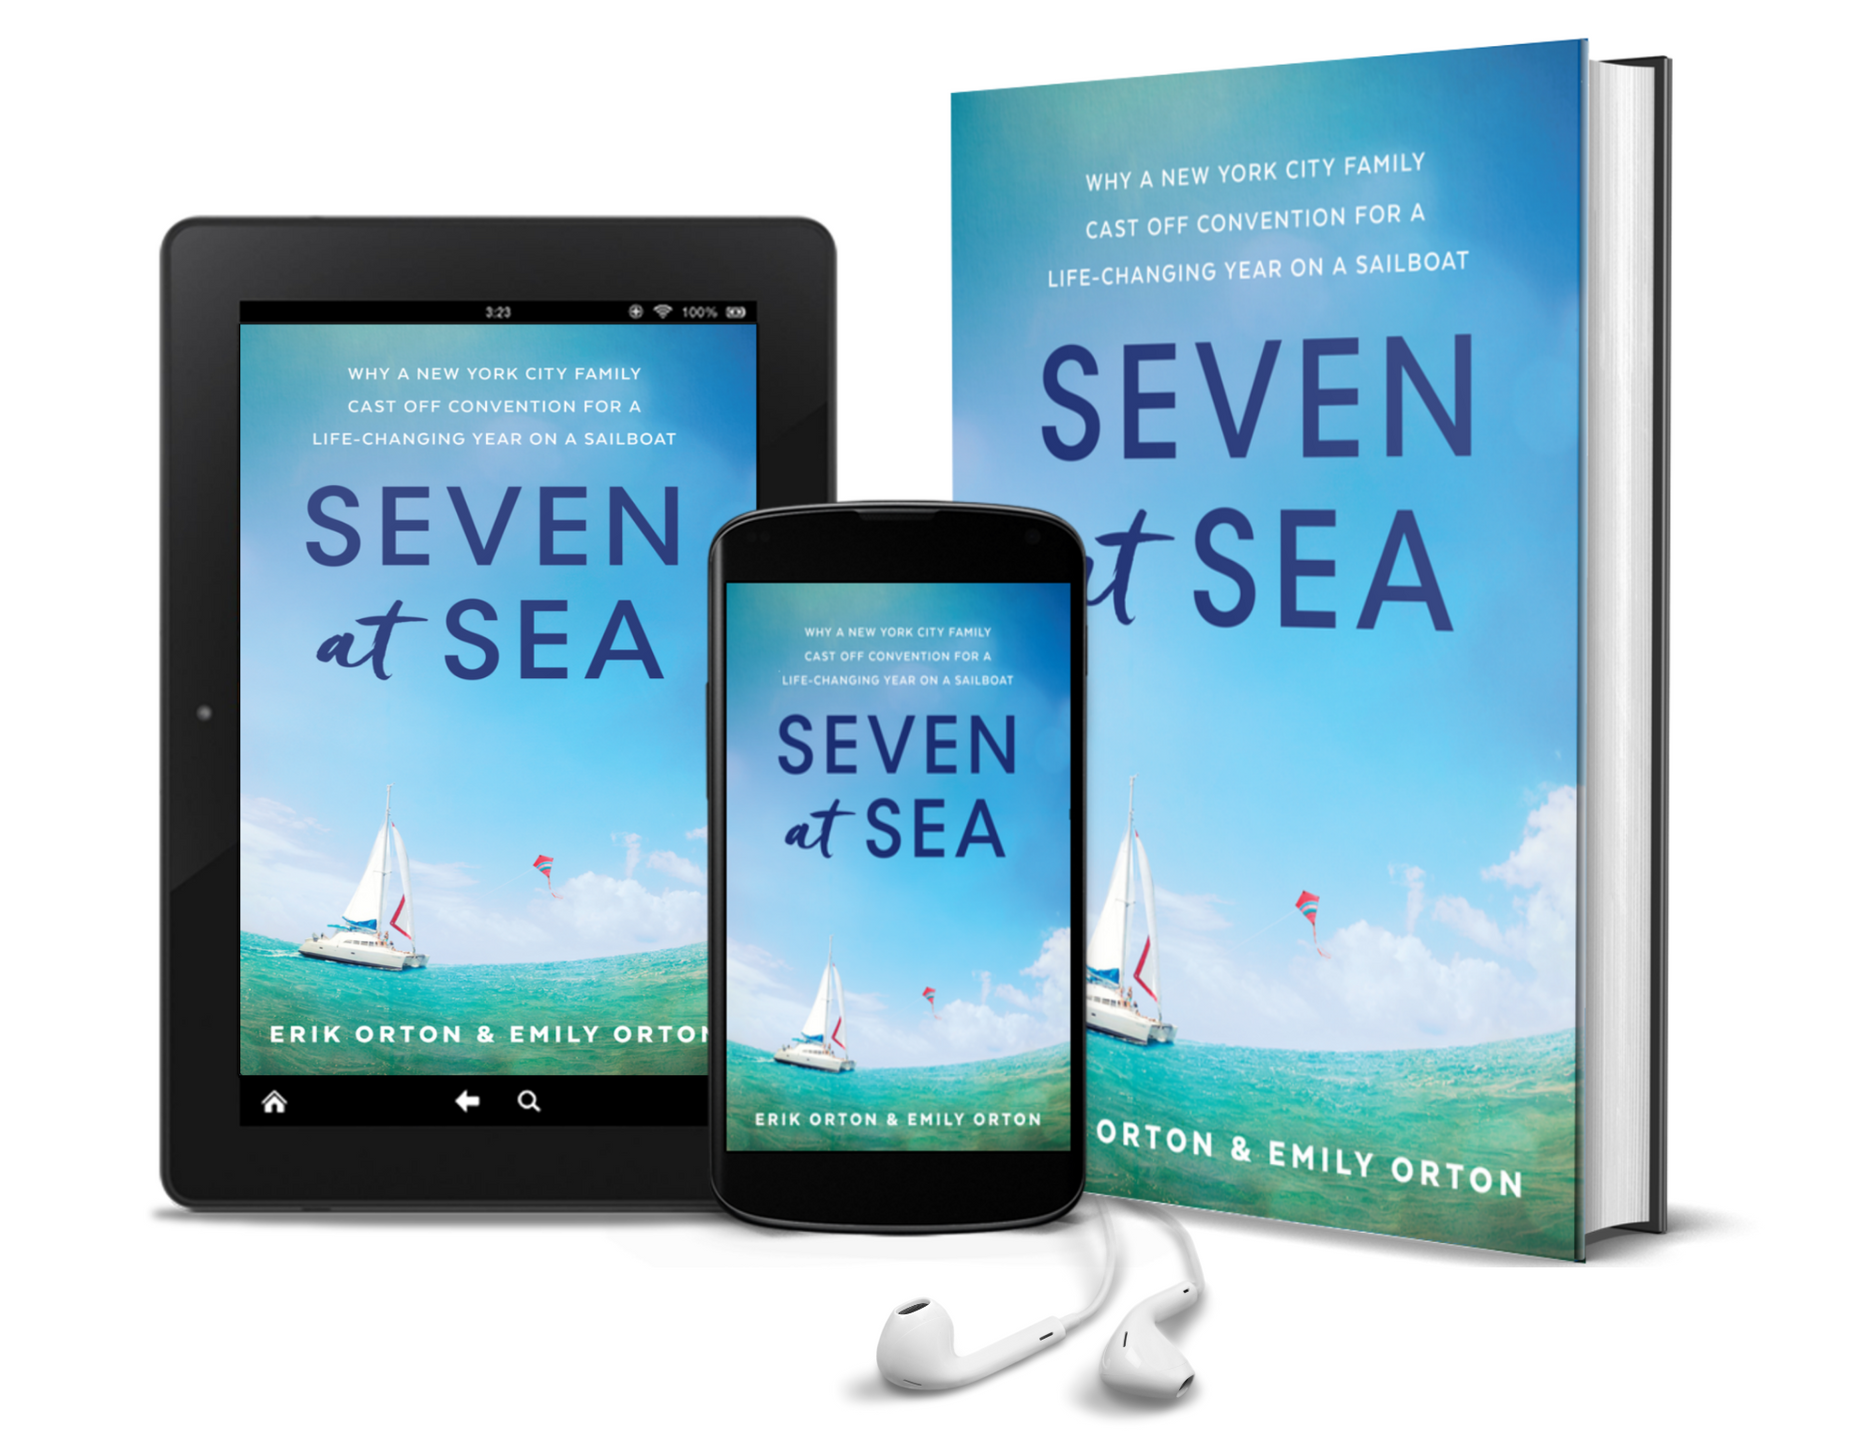 Books, Sailing, Ocean, book, sail, adventure, family, learning, growing